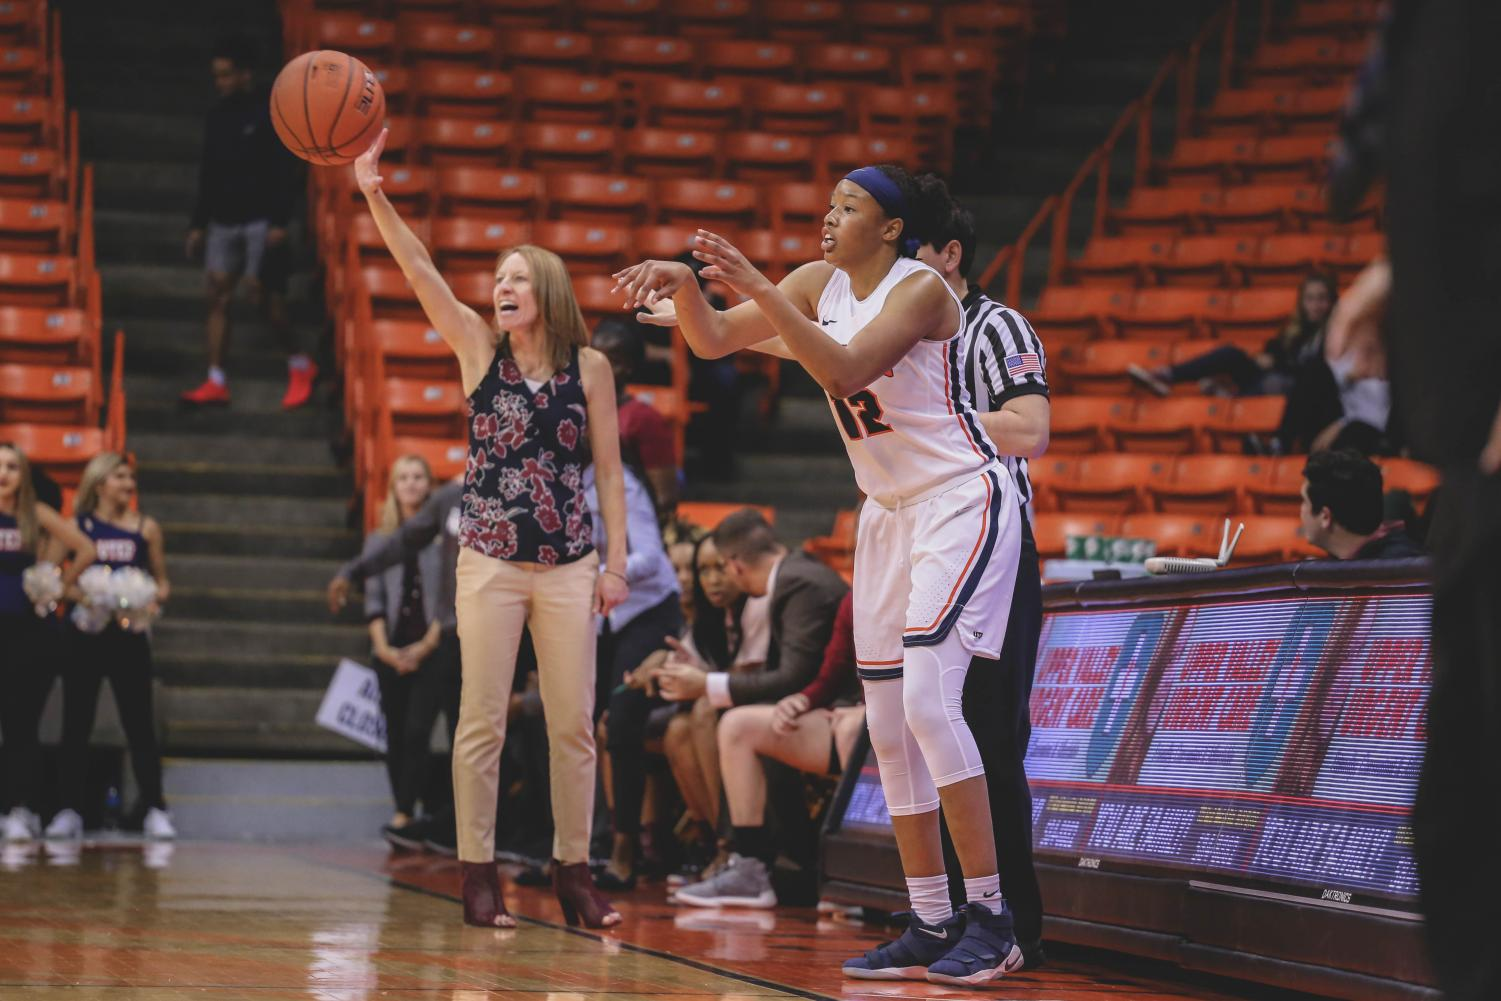 Junior+guard+Ariona+Gill+throws+the+ball+in+at+a+game+against+the+NMSU+Aggies+on+Saturday%2C+Nov.+17.+